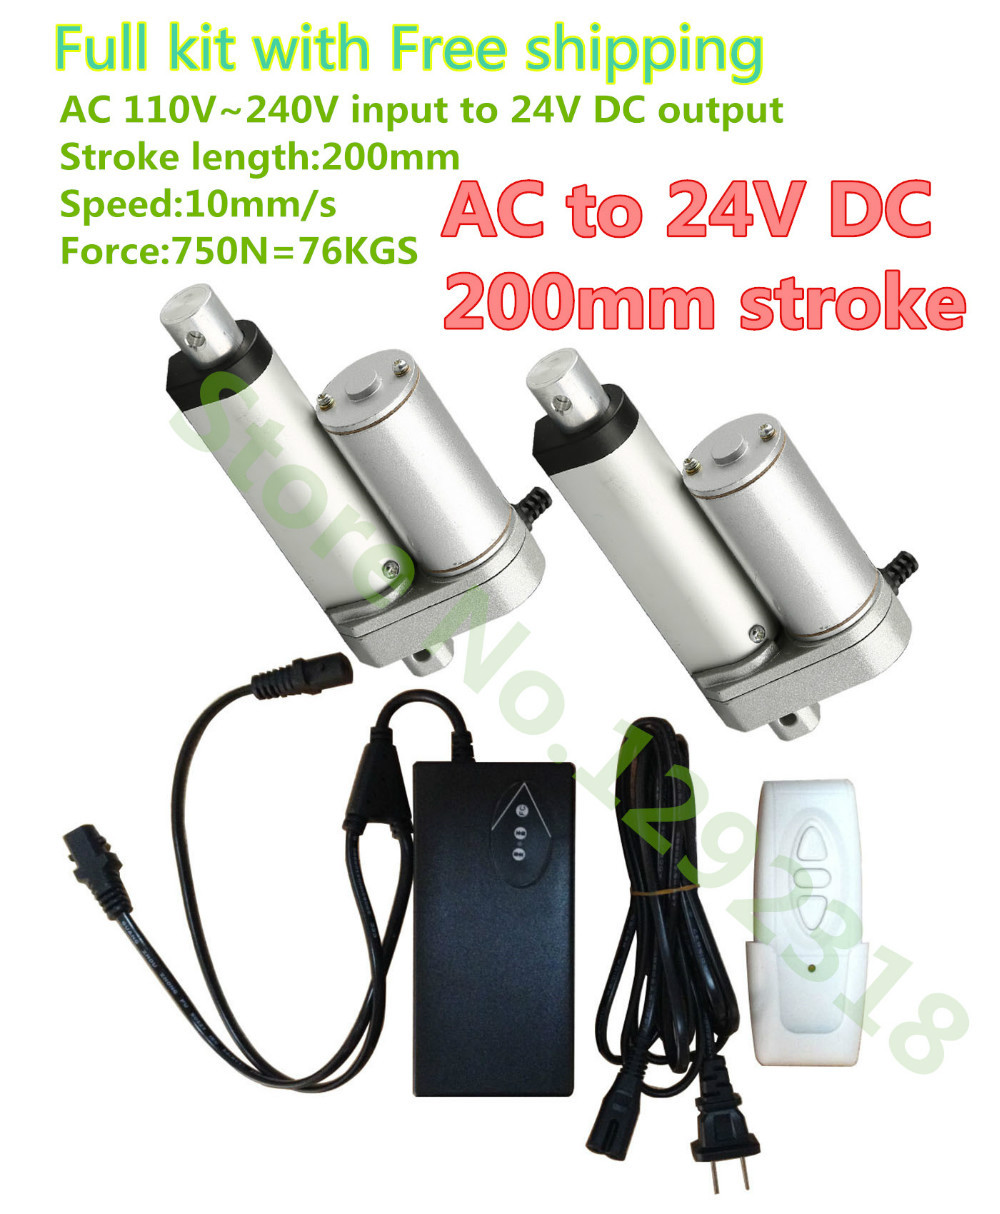 """24V DC wireless control system 200mm=8"""" stroke length 24V DC linear actuators remotes controller for home appliance etc.(China (Mainland))"""